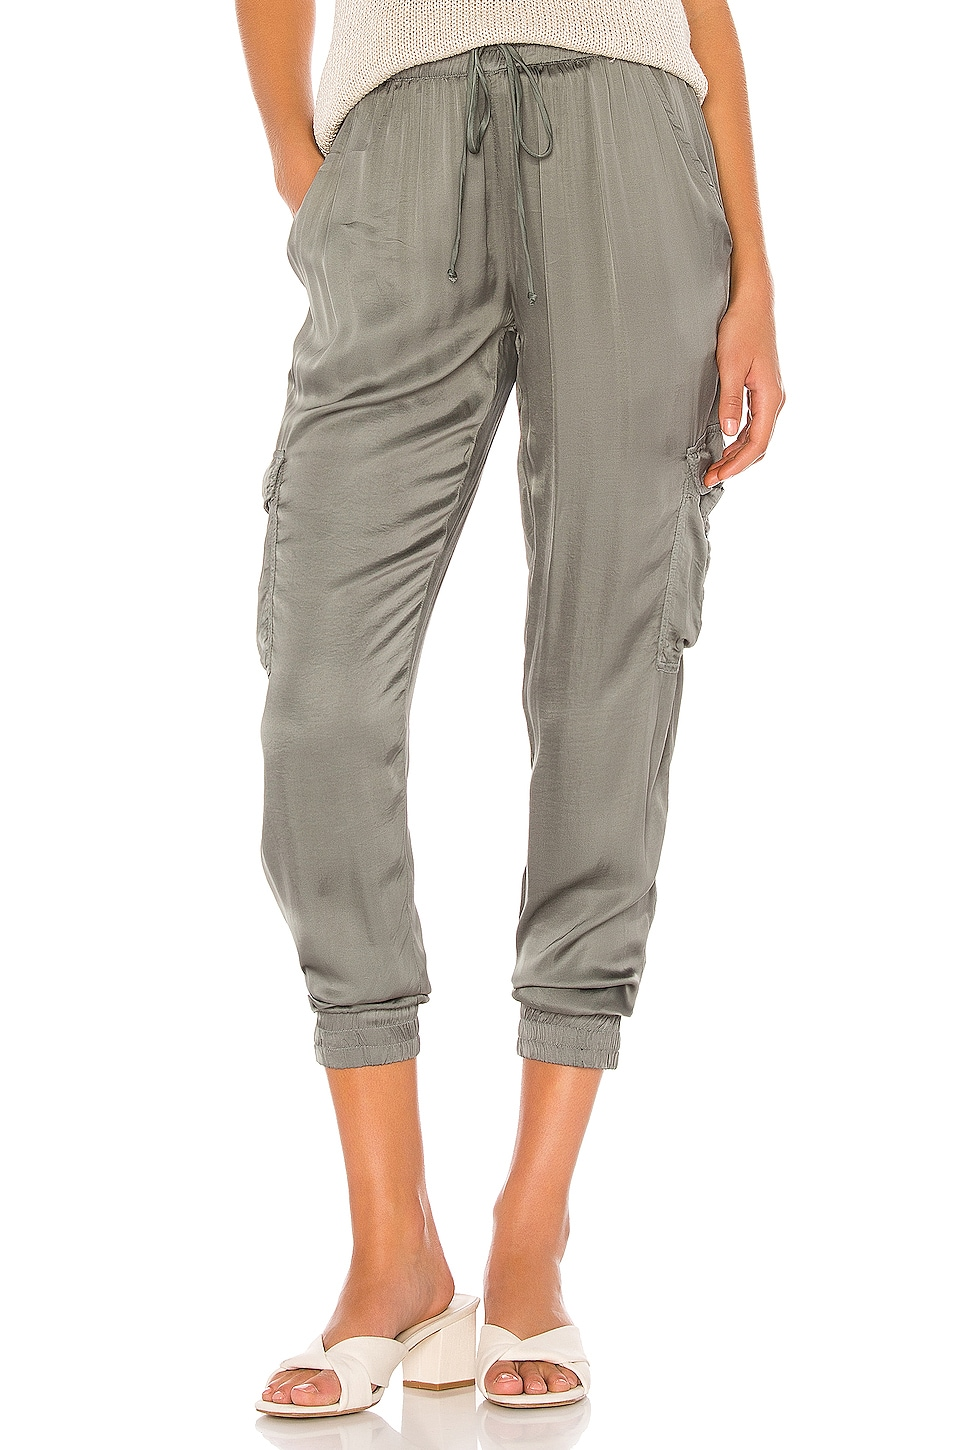 YFB CLOTHING Jamie Pant in Seaglass